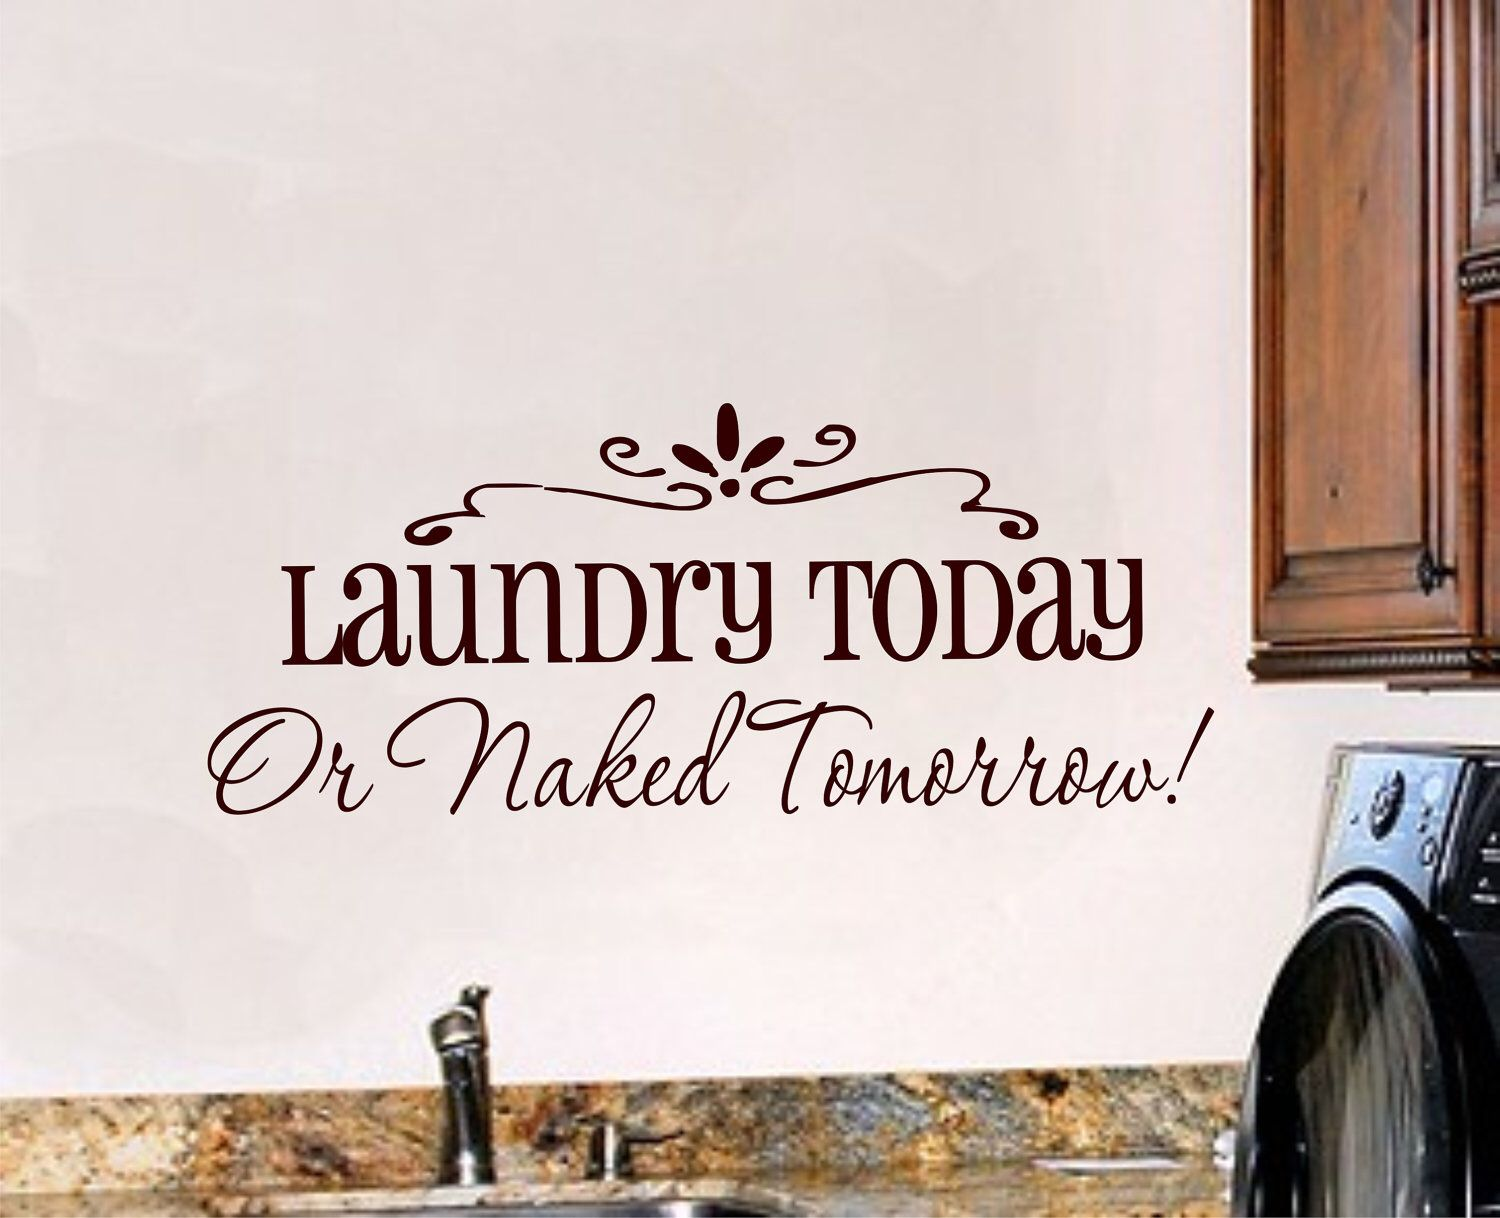 Laundry Room Wall Appliques Laundry Room Wall Decal  Vinyl Lettering  Vinyl Wall Art.